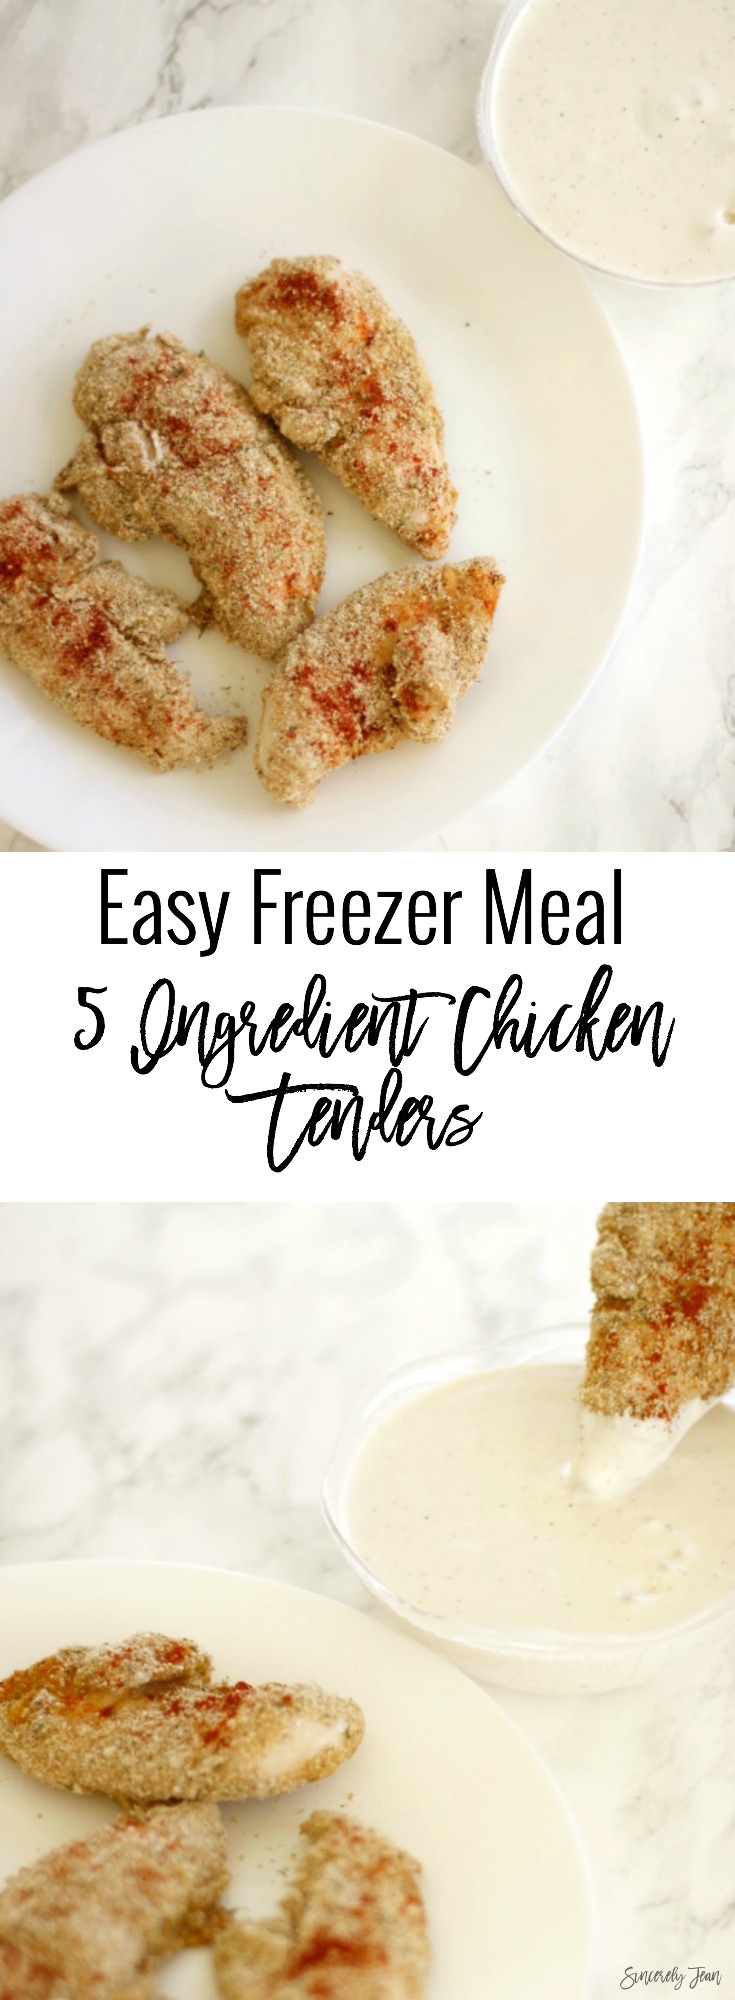 Simple dinner recipes by SincerelyJean.com: 5 ingredient chicken fingers!